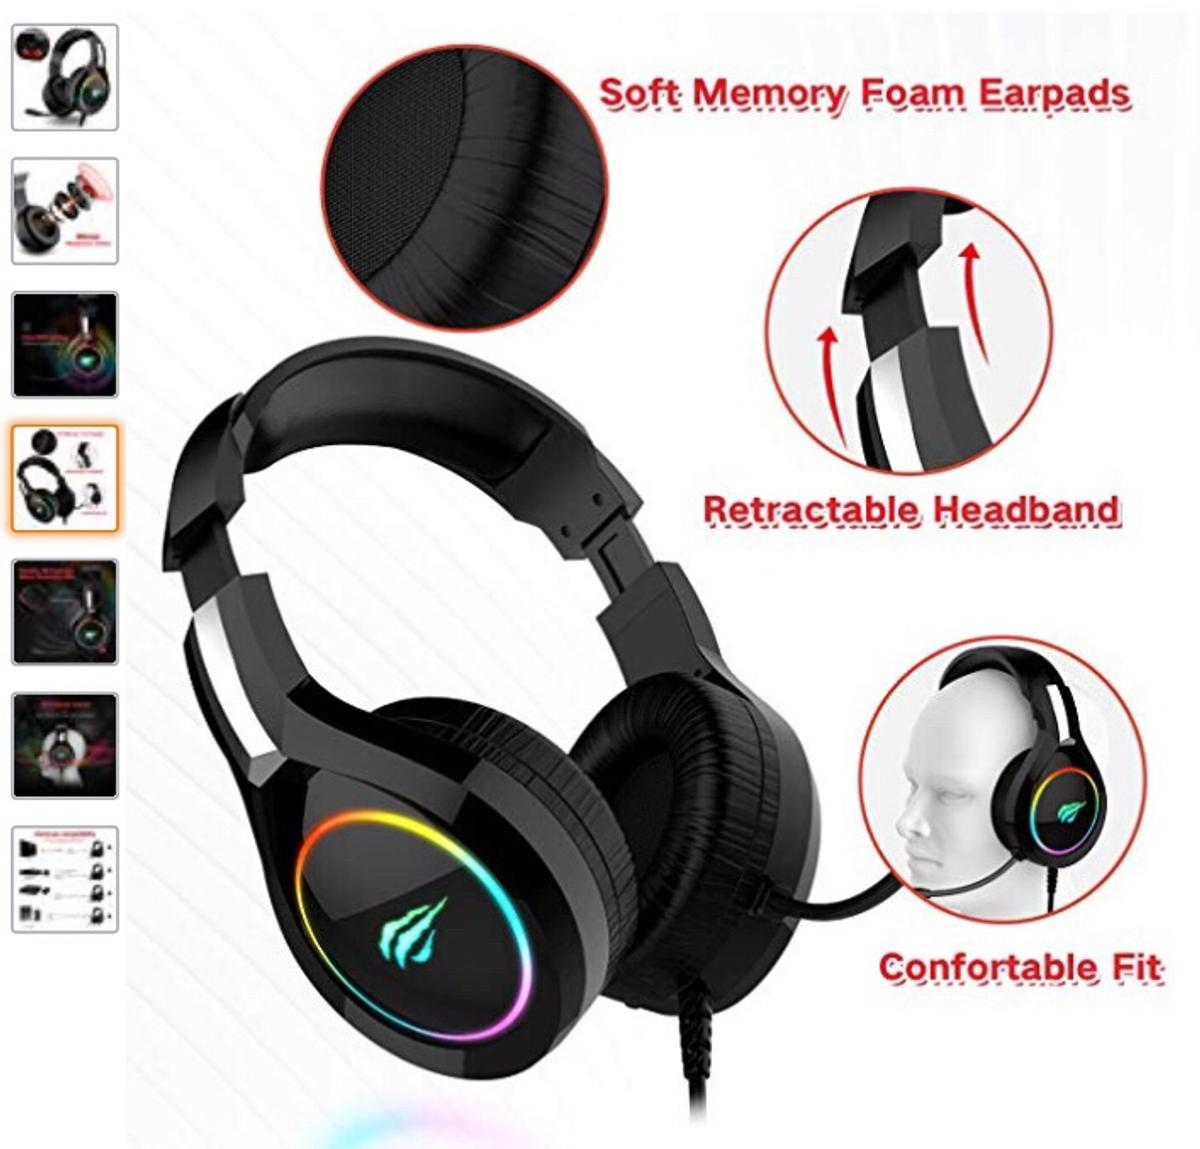 HAVIT RGB Wired Gaming Headset PC in CF35 Coychurch for